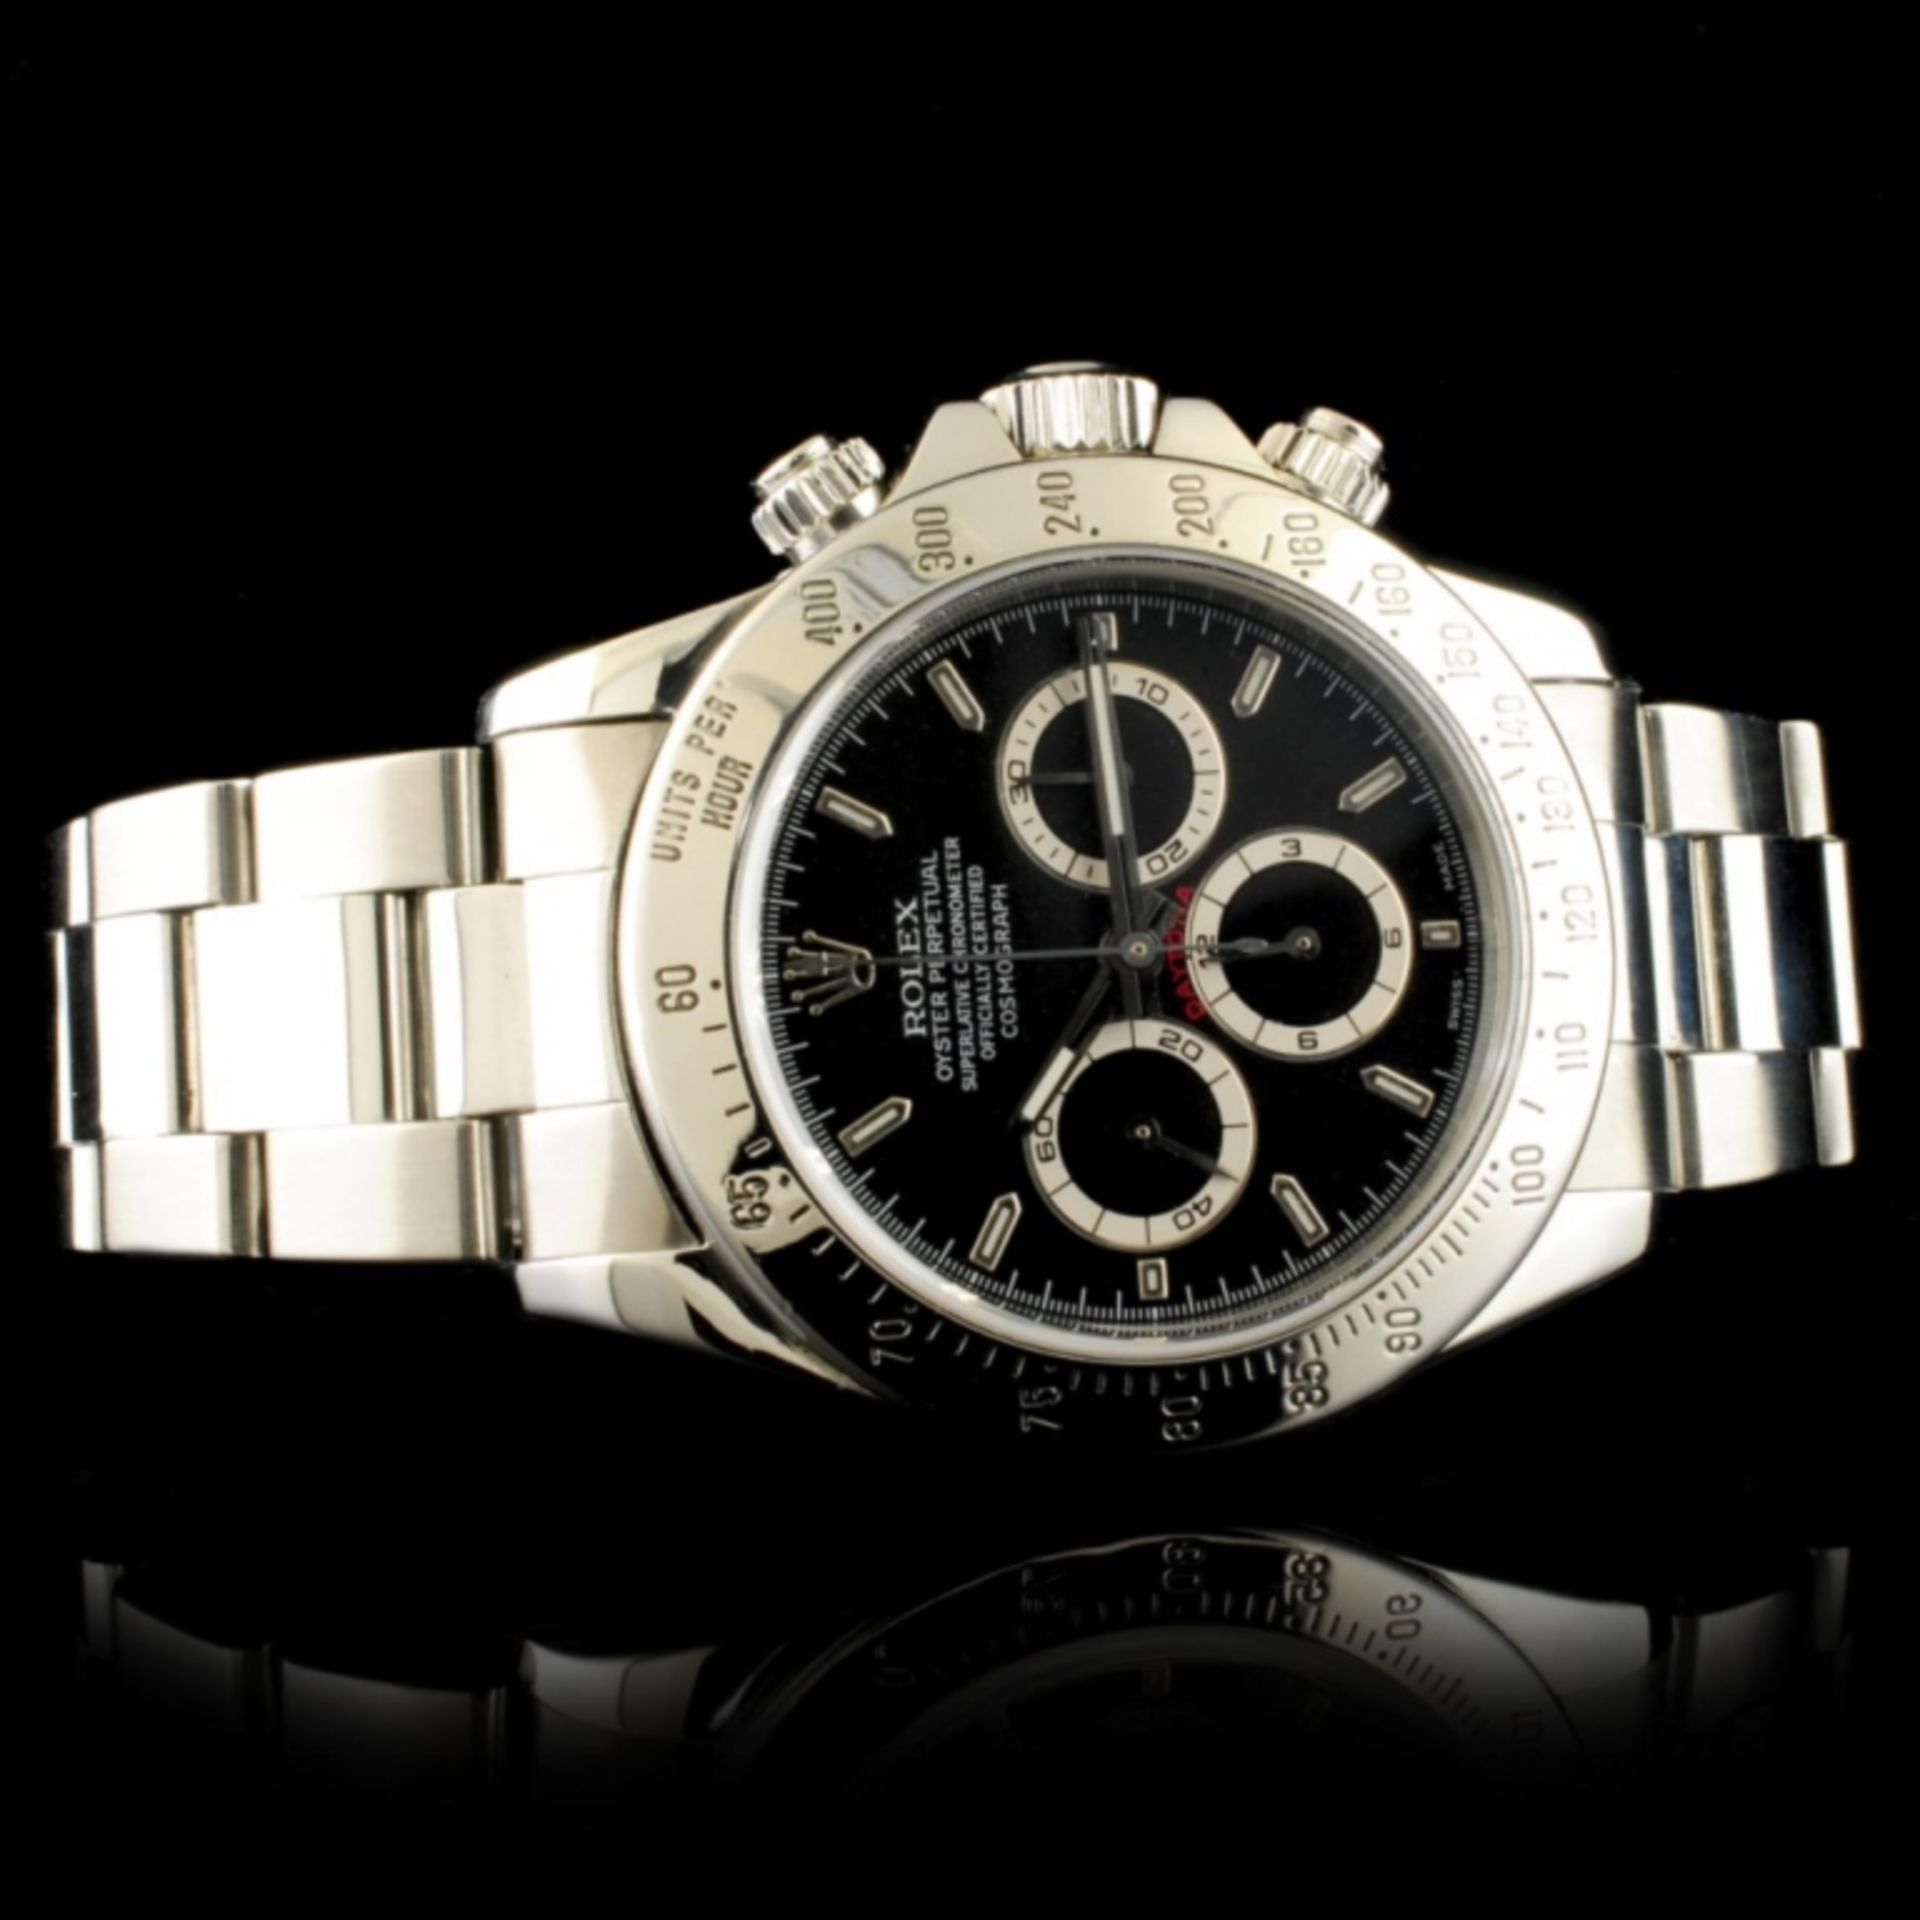 Rolex DAYTONA Cosmograph 16520 40MM Wristwatch - Image 3 of 9